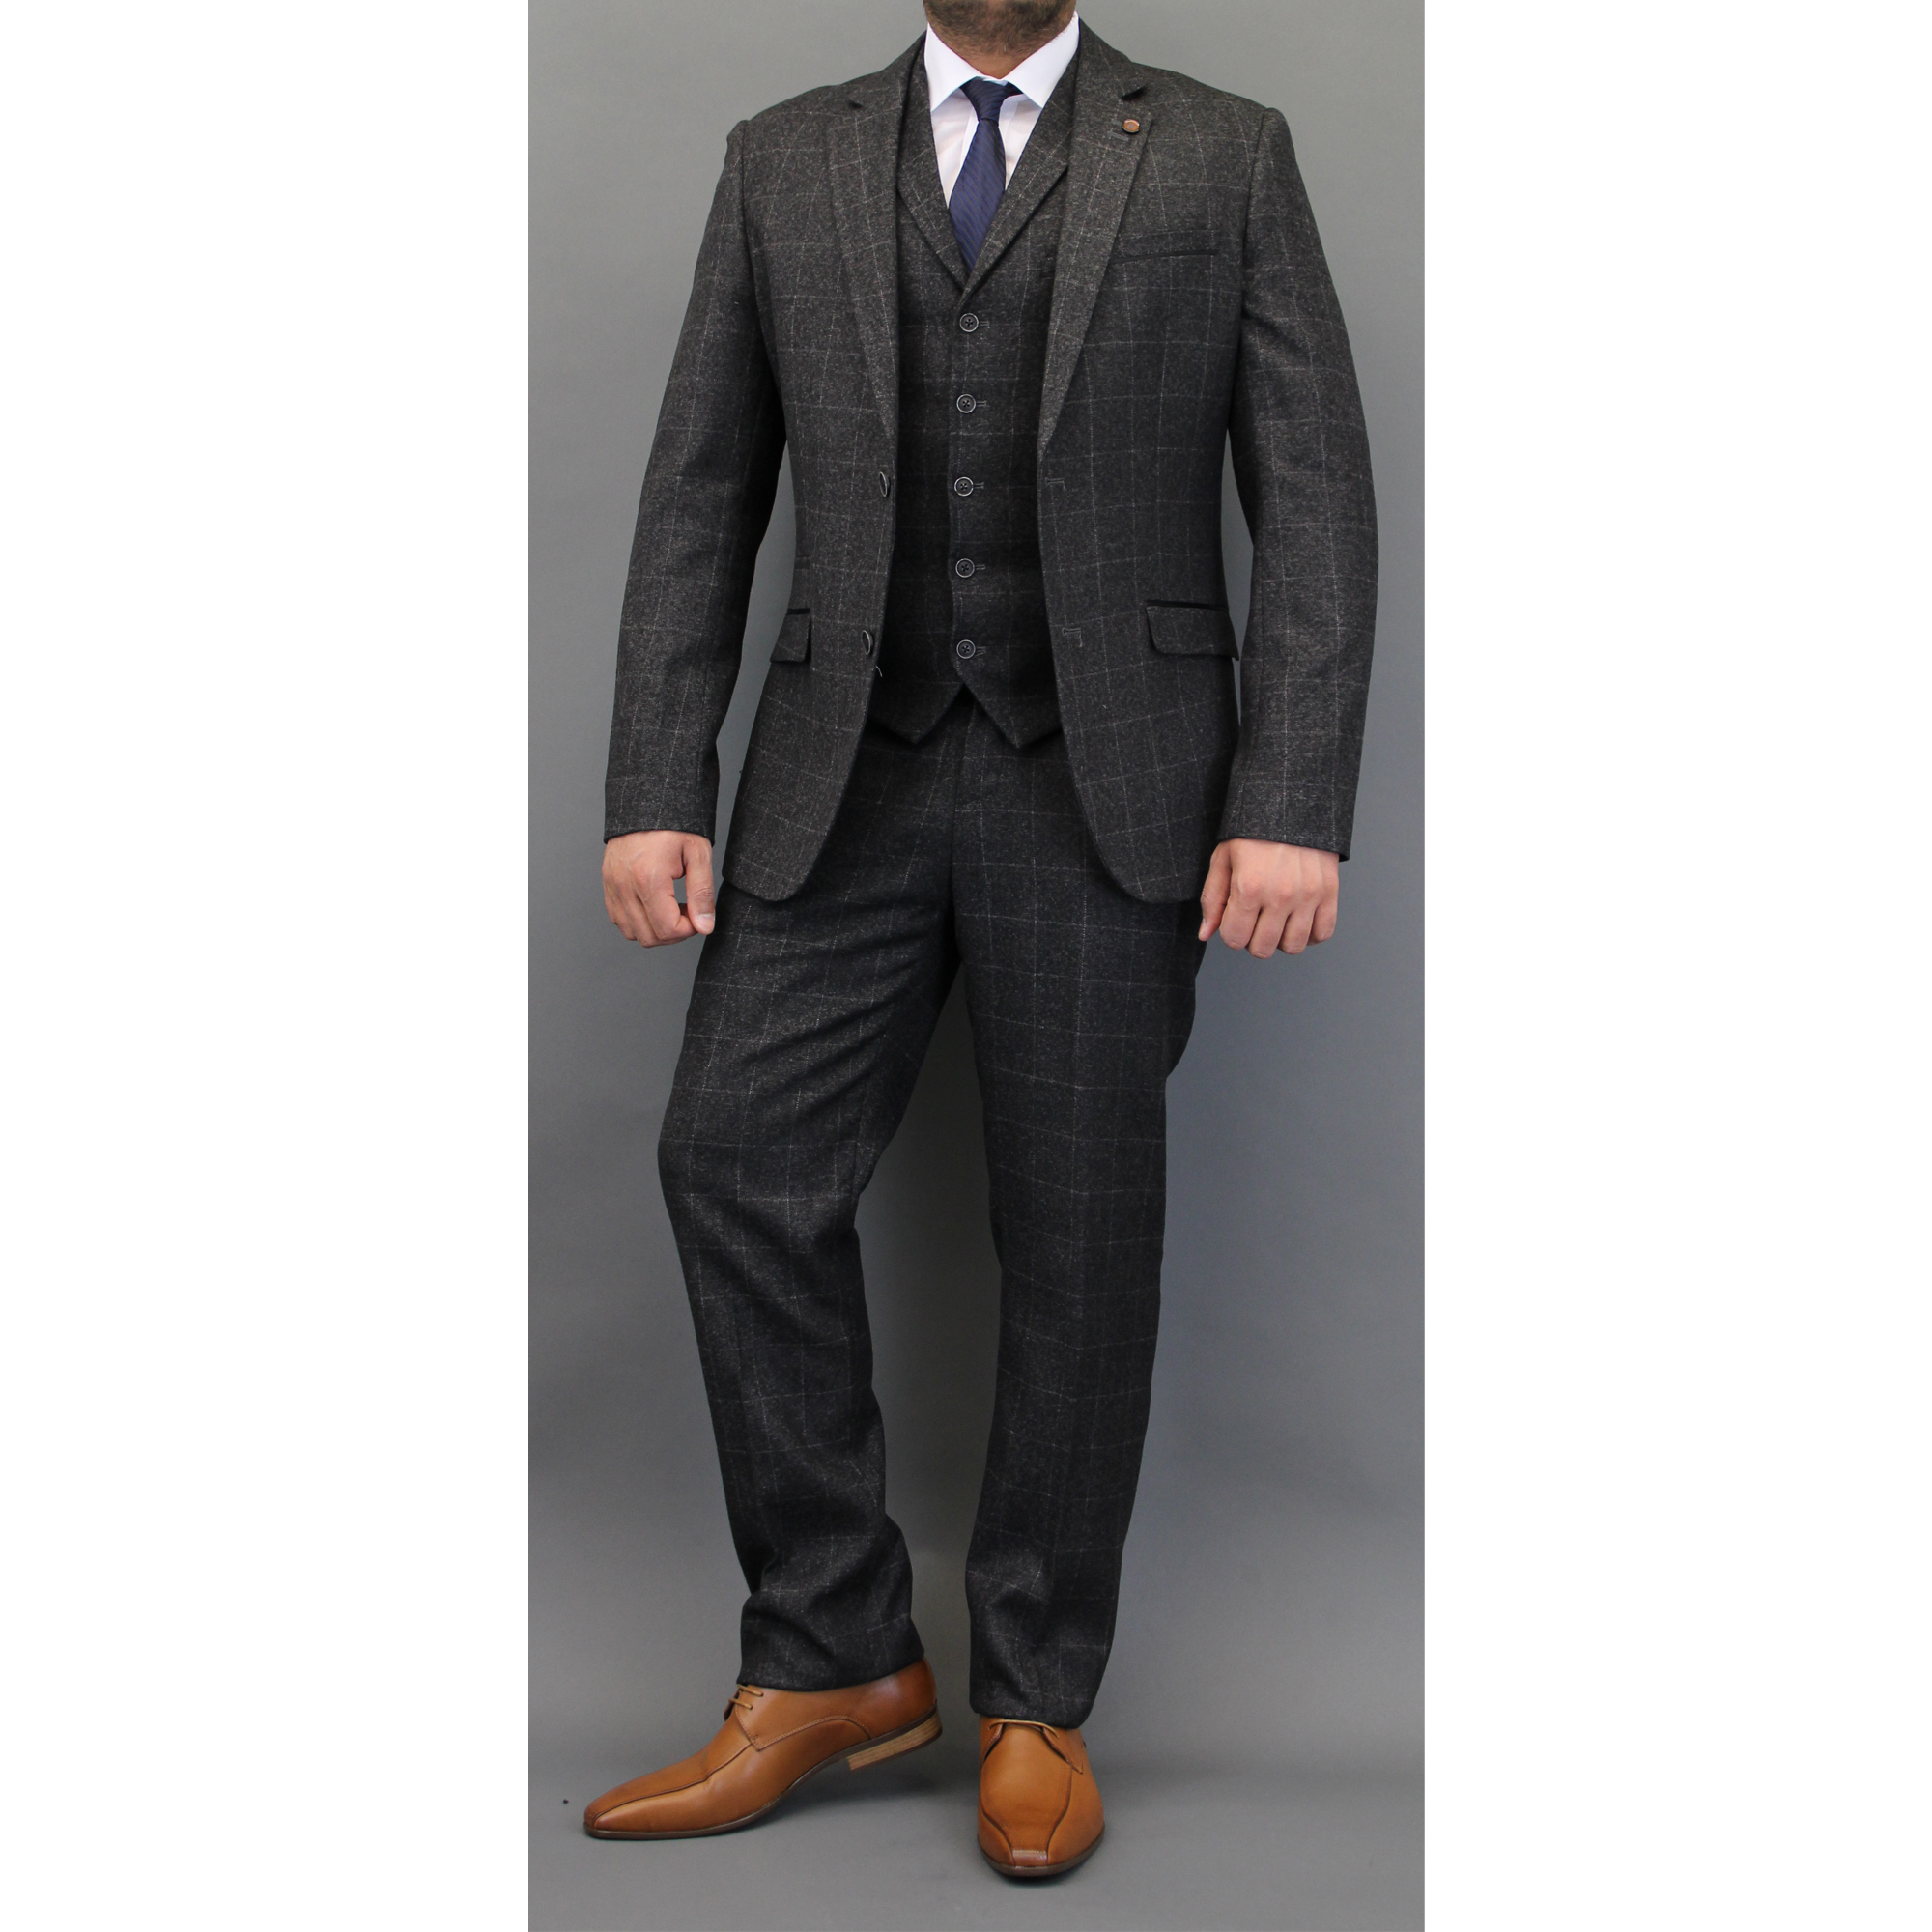 Men's Extra Slim Suit Separates are available in a variety of sizes, including tall. These suits are fitted through the shoulders, chest, waist and legs to give you a tailored and clean-cut look. Try our Extra Slim Fit suits in black, blue, navy, gray, maroon and more.